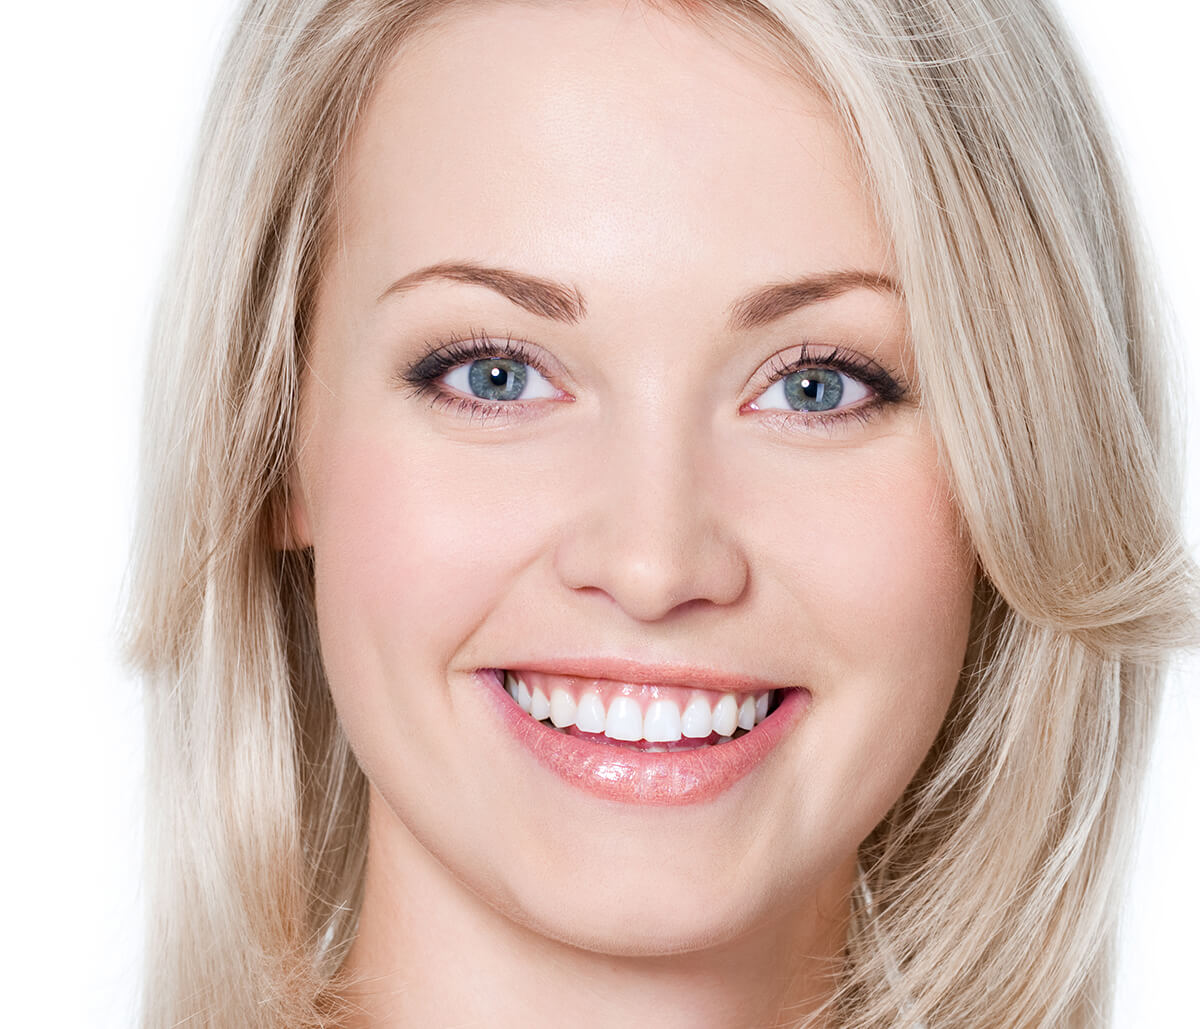 How to Find Holistic Dentist in Yadkinville Area